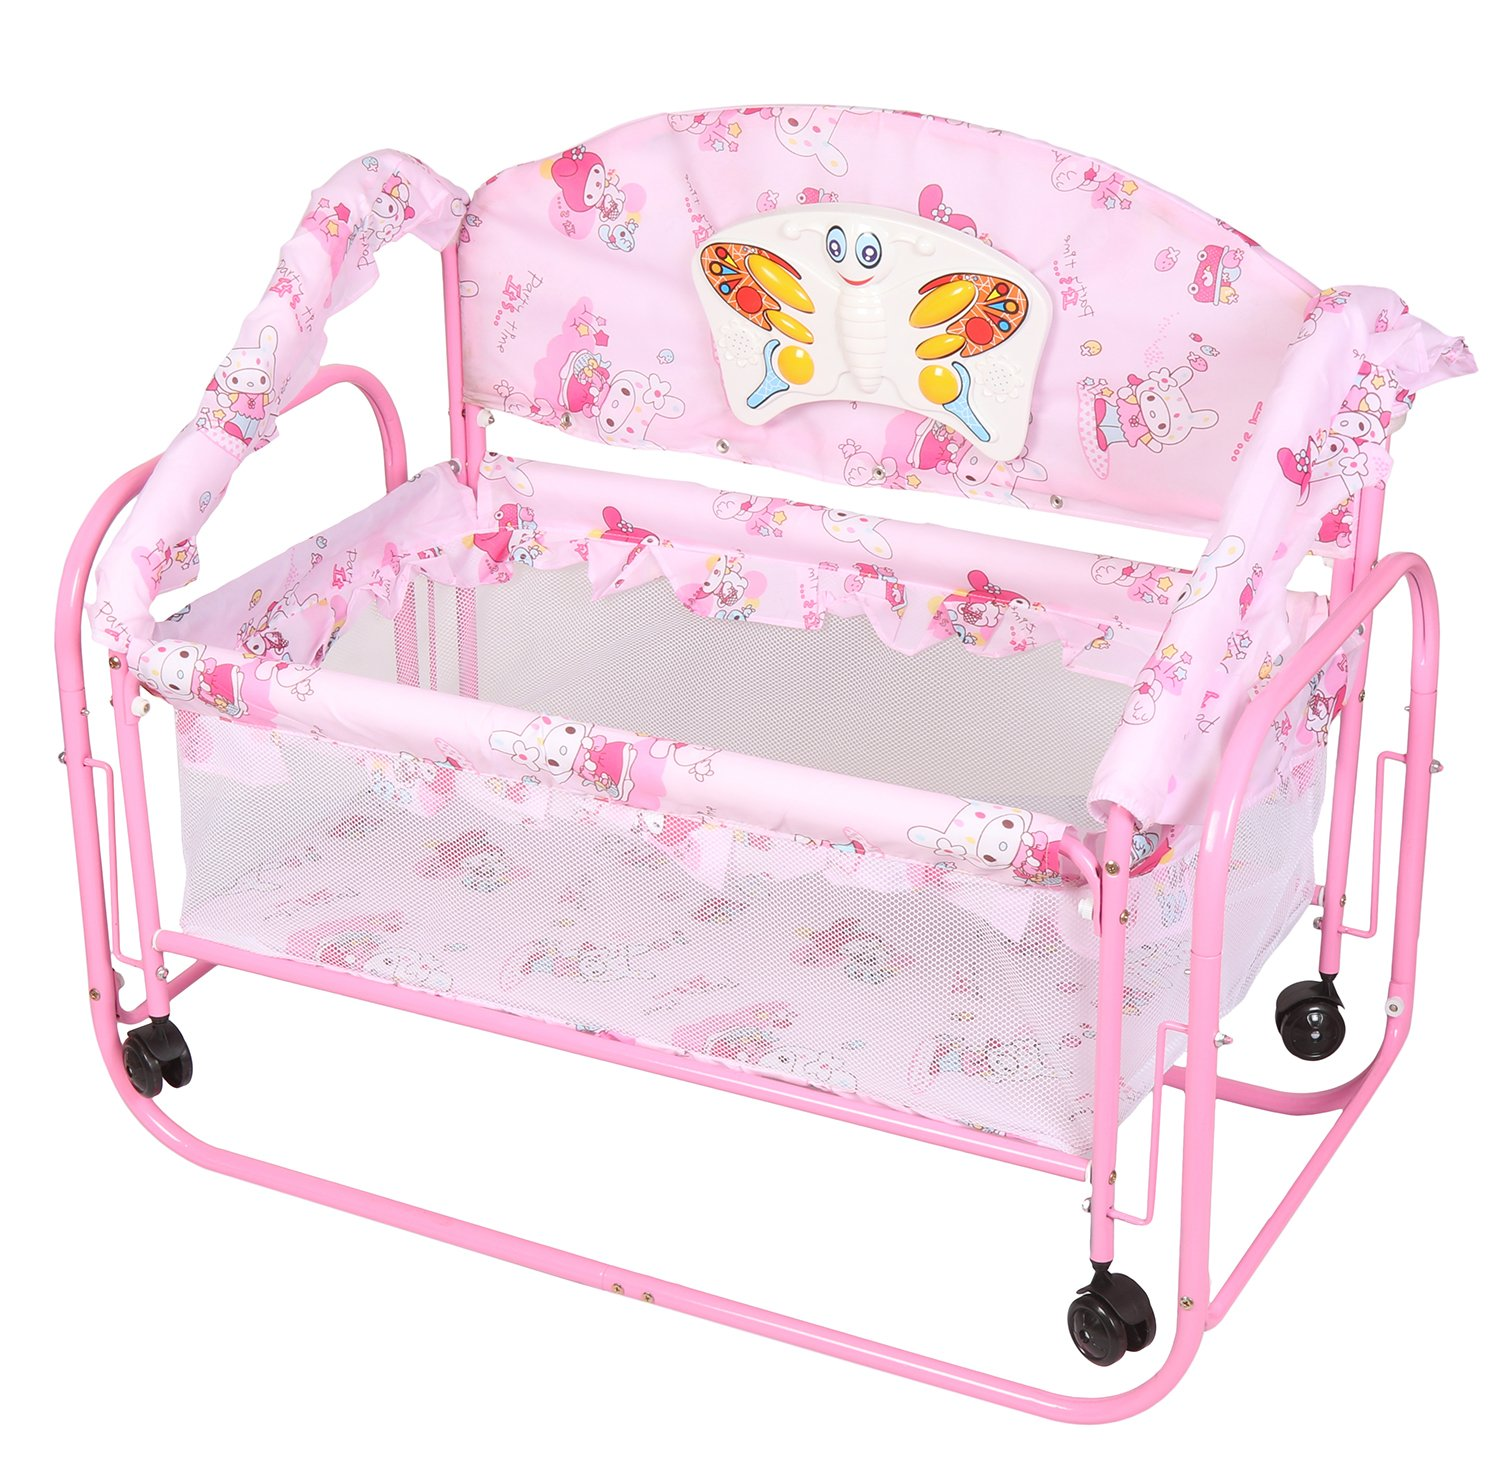 Tiffy & Toffee Baby Princess Cradle Cum Bed (Pink)